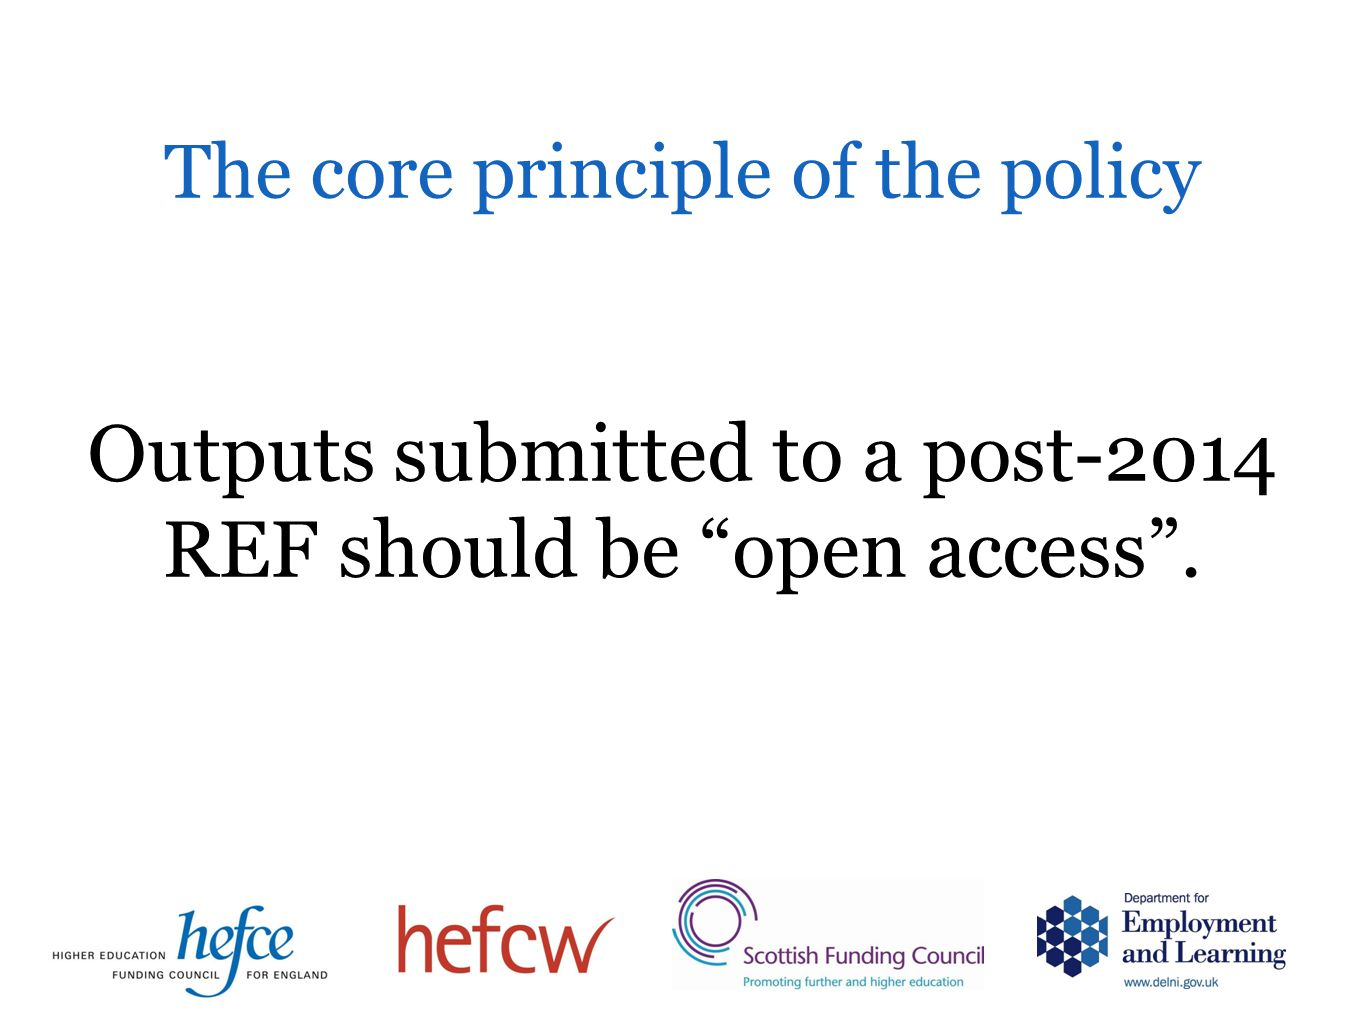 Outputs submitted to a post-2014 REF should be open access . The core principle of the policy